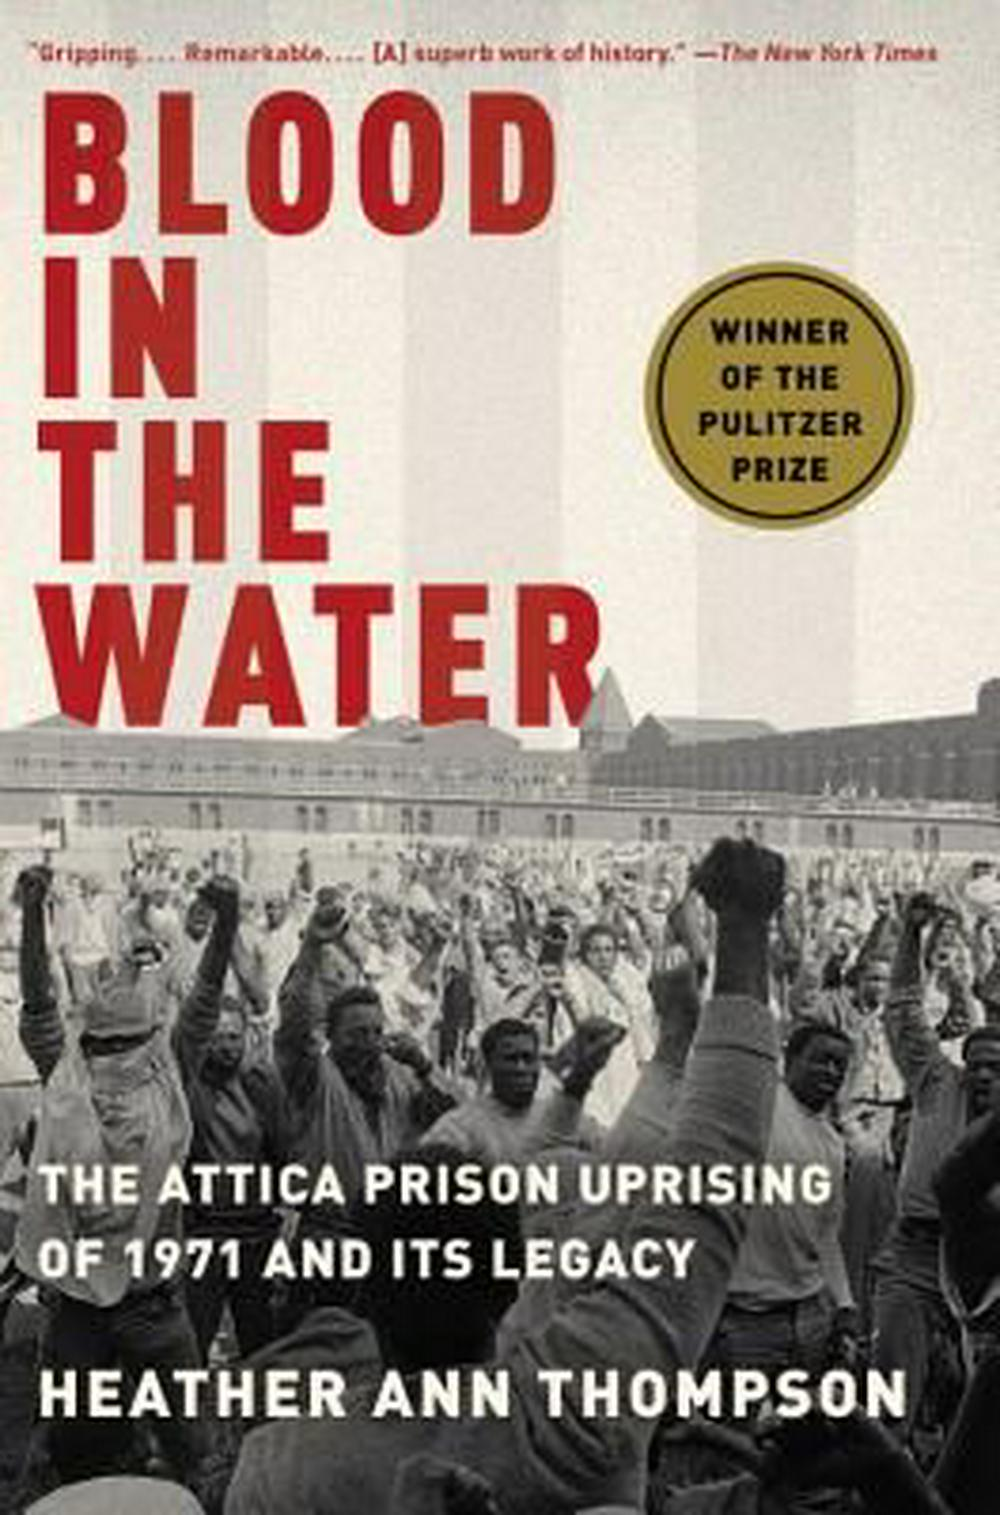 Blood in the Water: The Attica Prison Uprising of 1971 and Its Legacy by Heather Ann Thompson, ISBN: 9781400078240